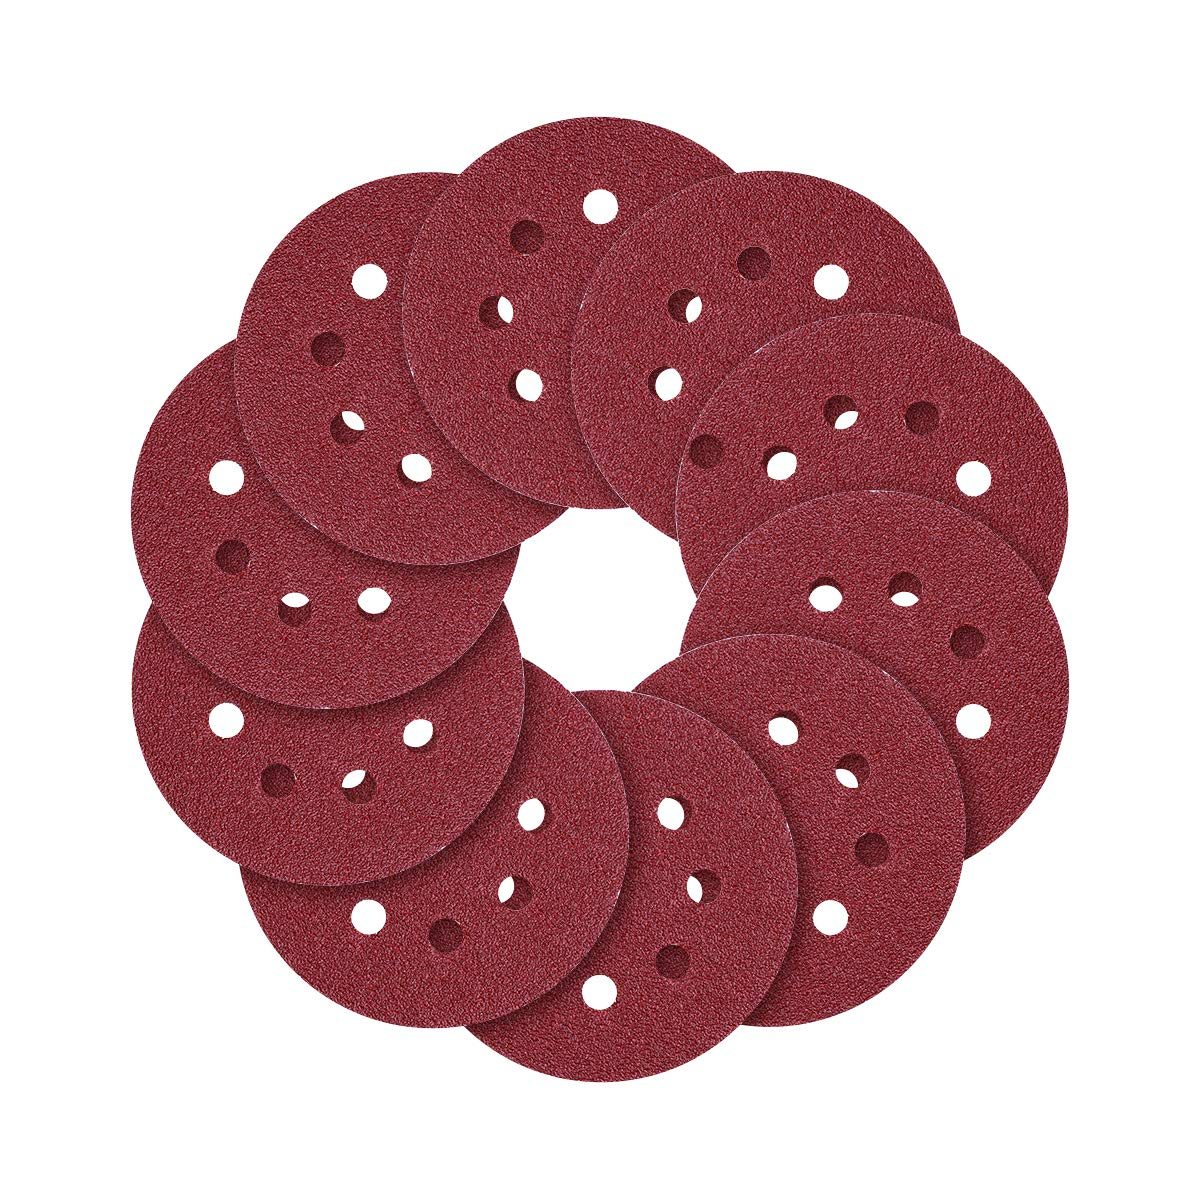 5-Inch 8-Hole Hook and Loop Sanding Discs, 40/80/120/240/320/600/800 Assorted Grits Sandpaper - Pack of 70 81NXGuEGXhL